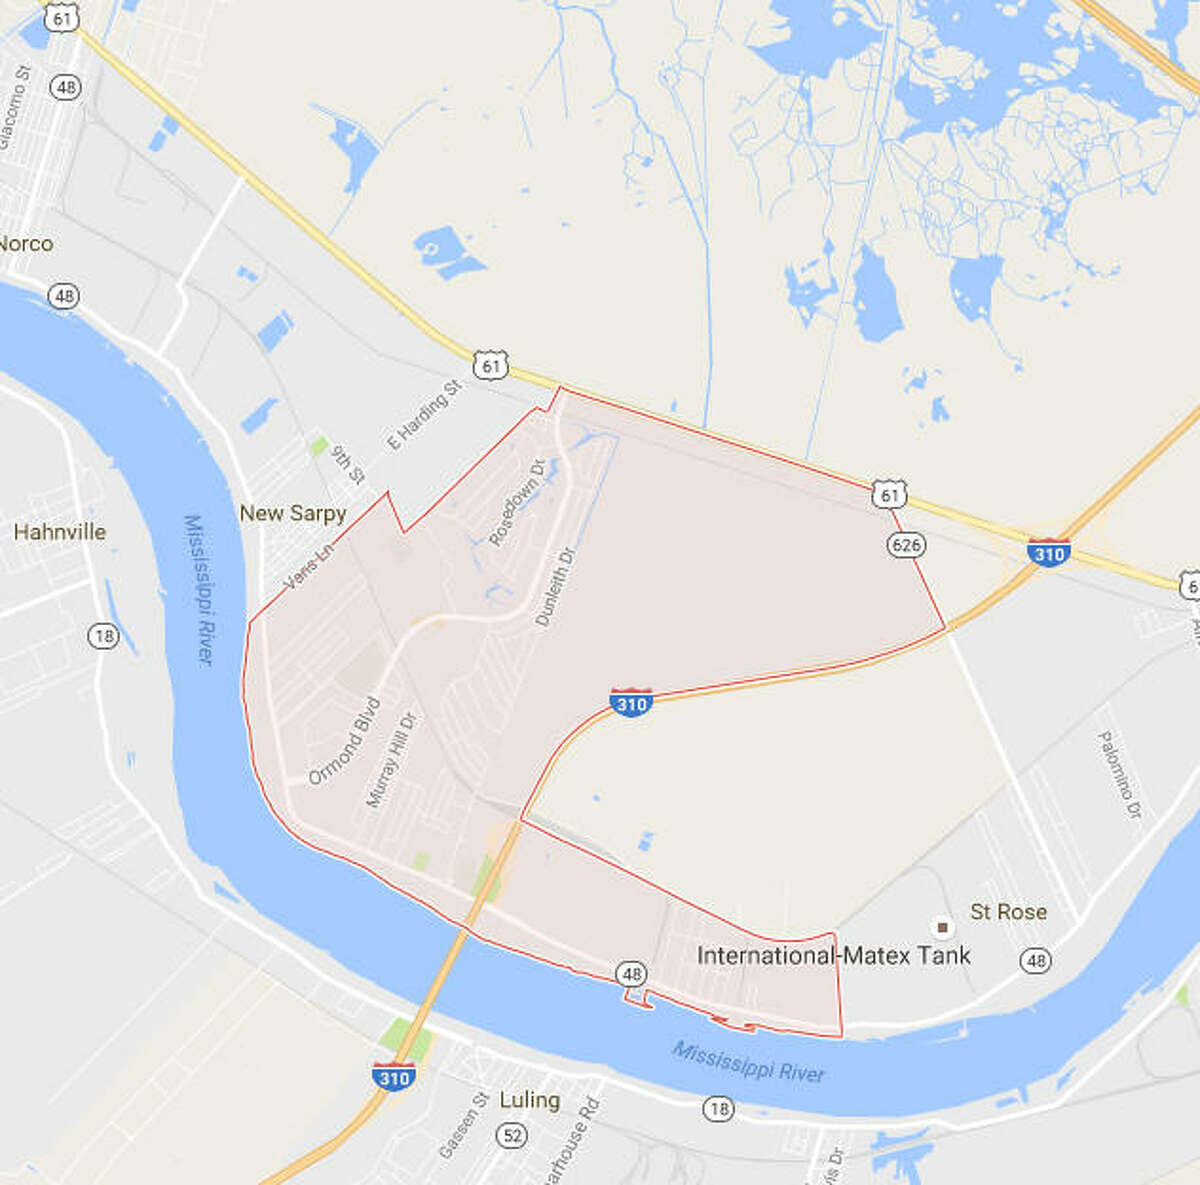 A map of Destrehan, La., about 30 minutes west of New Orleans. Caitlin Marie Verret, 22, was last seen there Nov. 2.